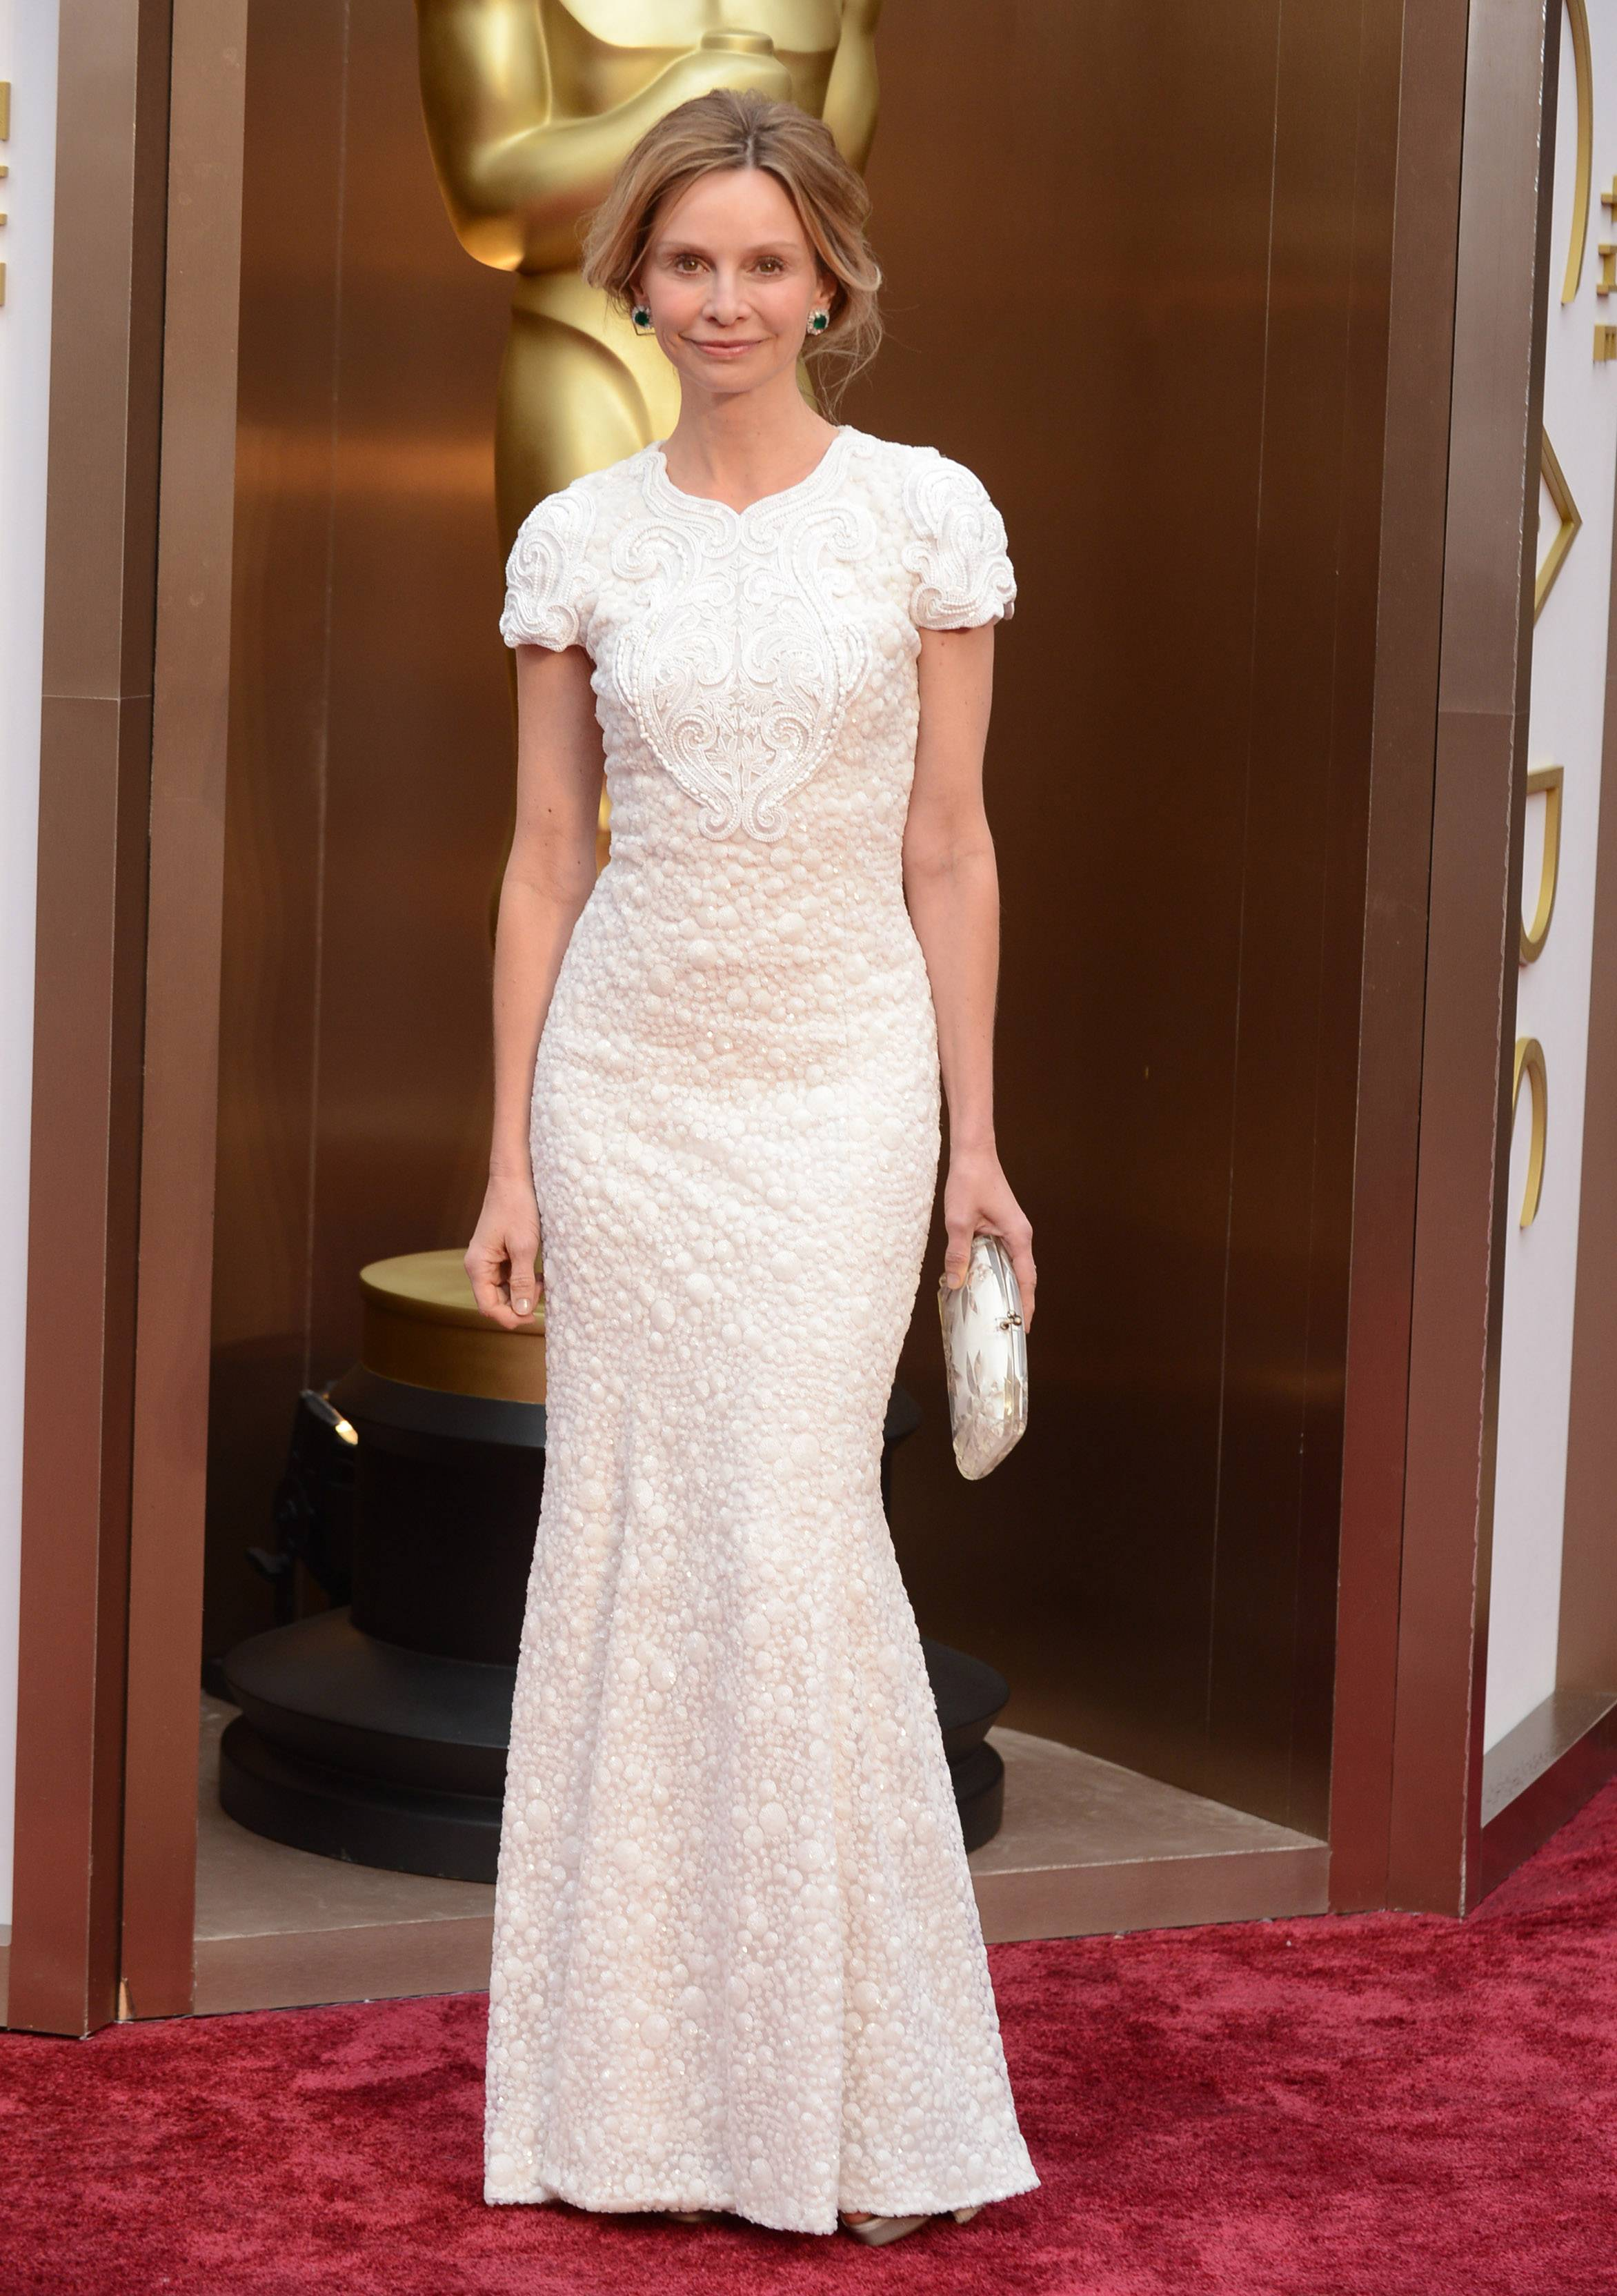 Calista Flockhart arrives at the Oscars on Sunday in Los Angeles.